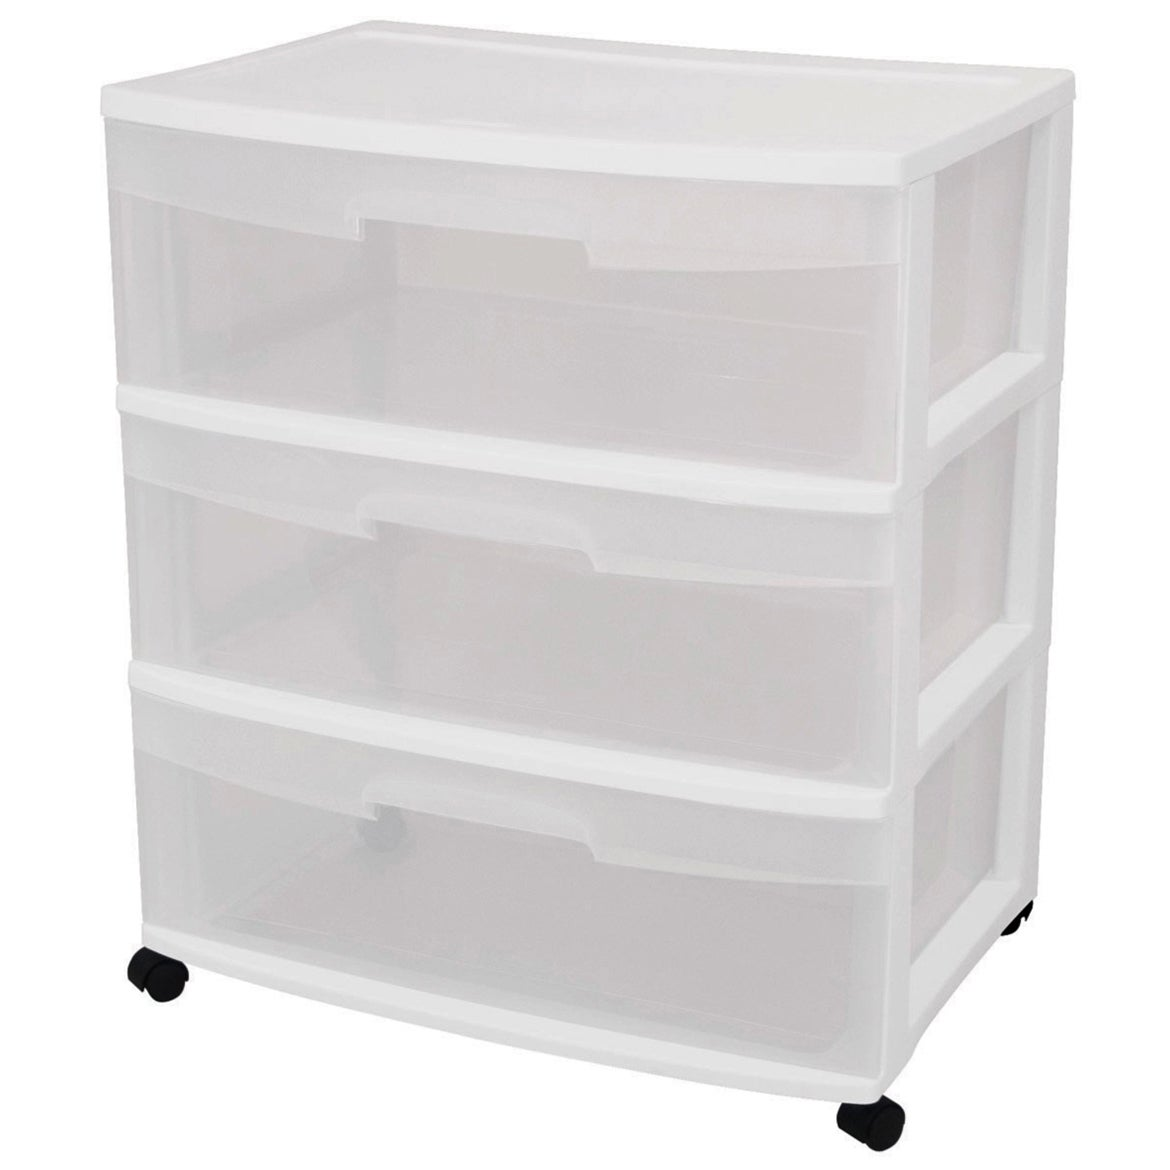 of four lined cabinet grey our addition unit baskets range basket rattan drawers shop to square storage white an choice